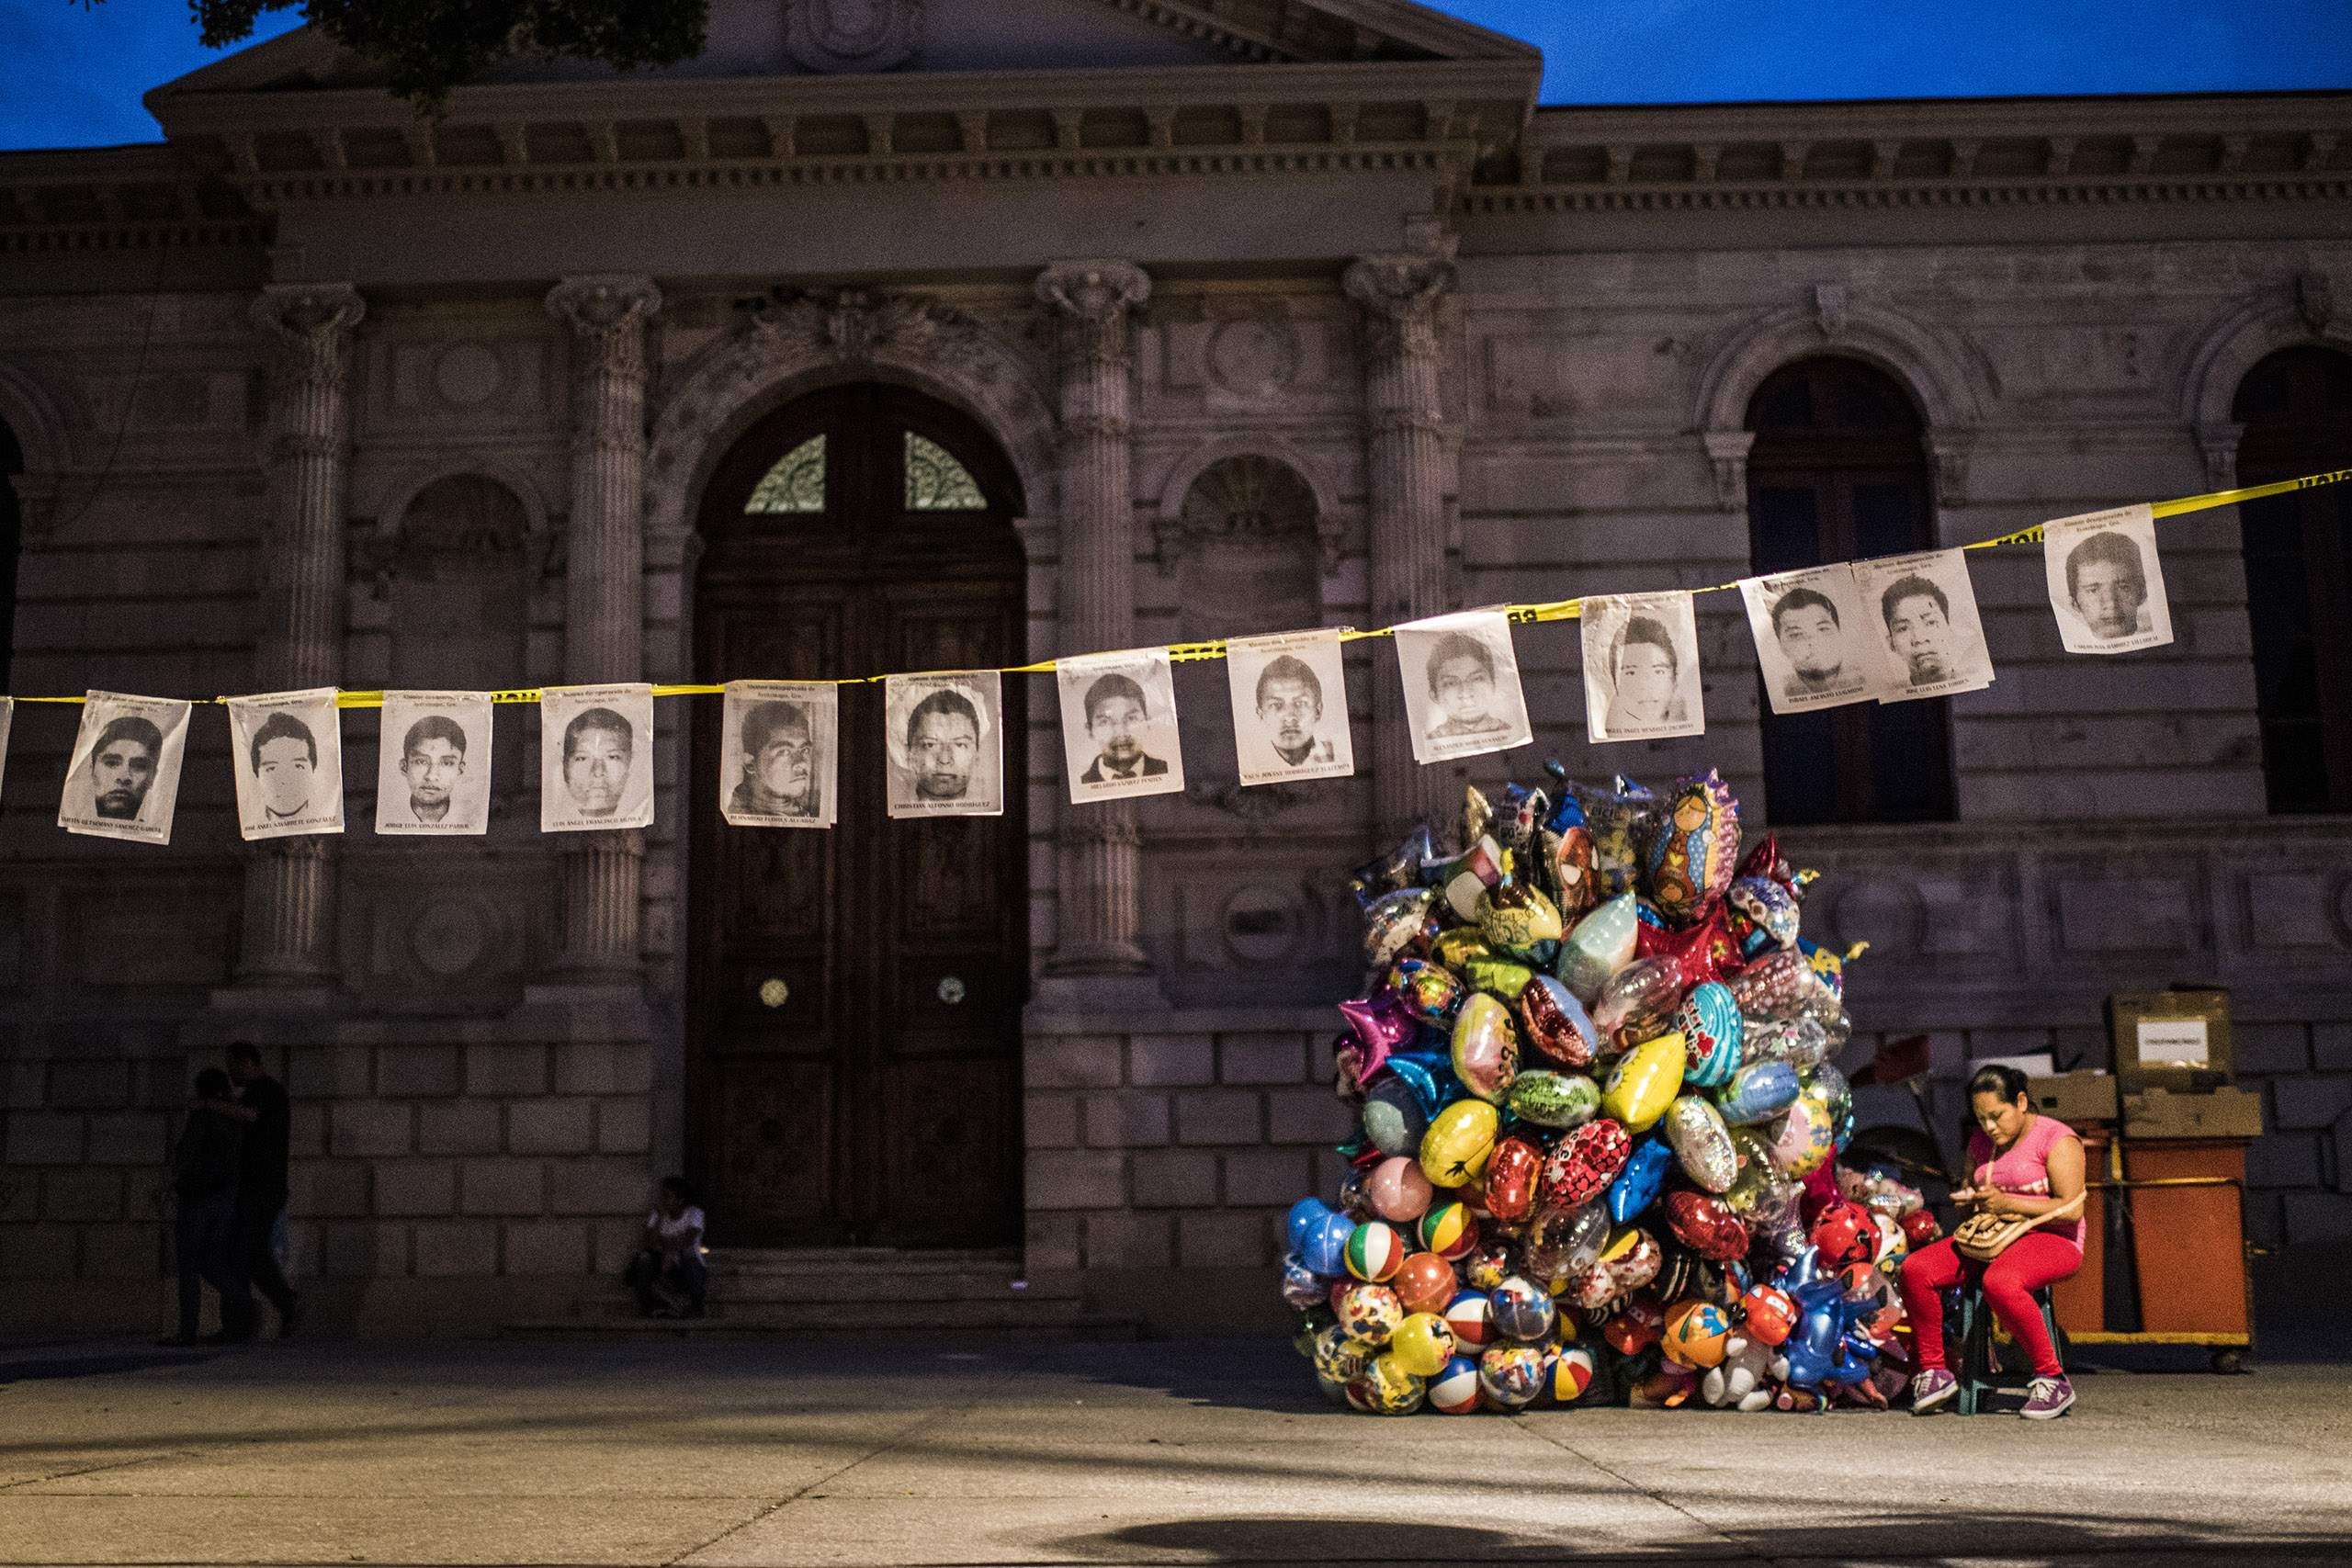 Grim memorial Portraits of the missing students hang in the main square of Chilpancingo, the capital of Guerrero state.